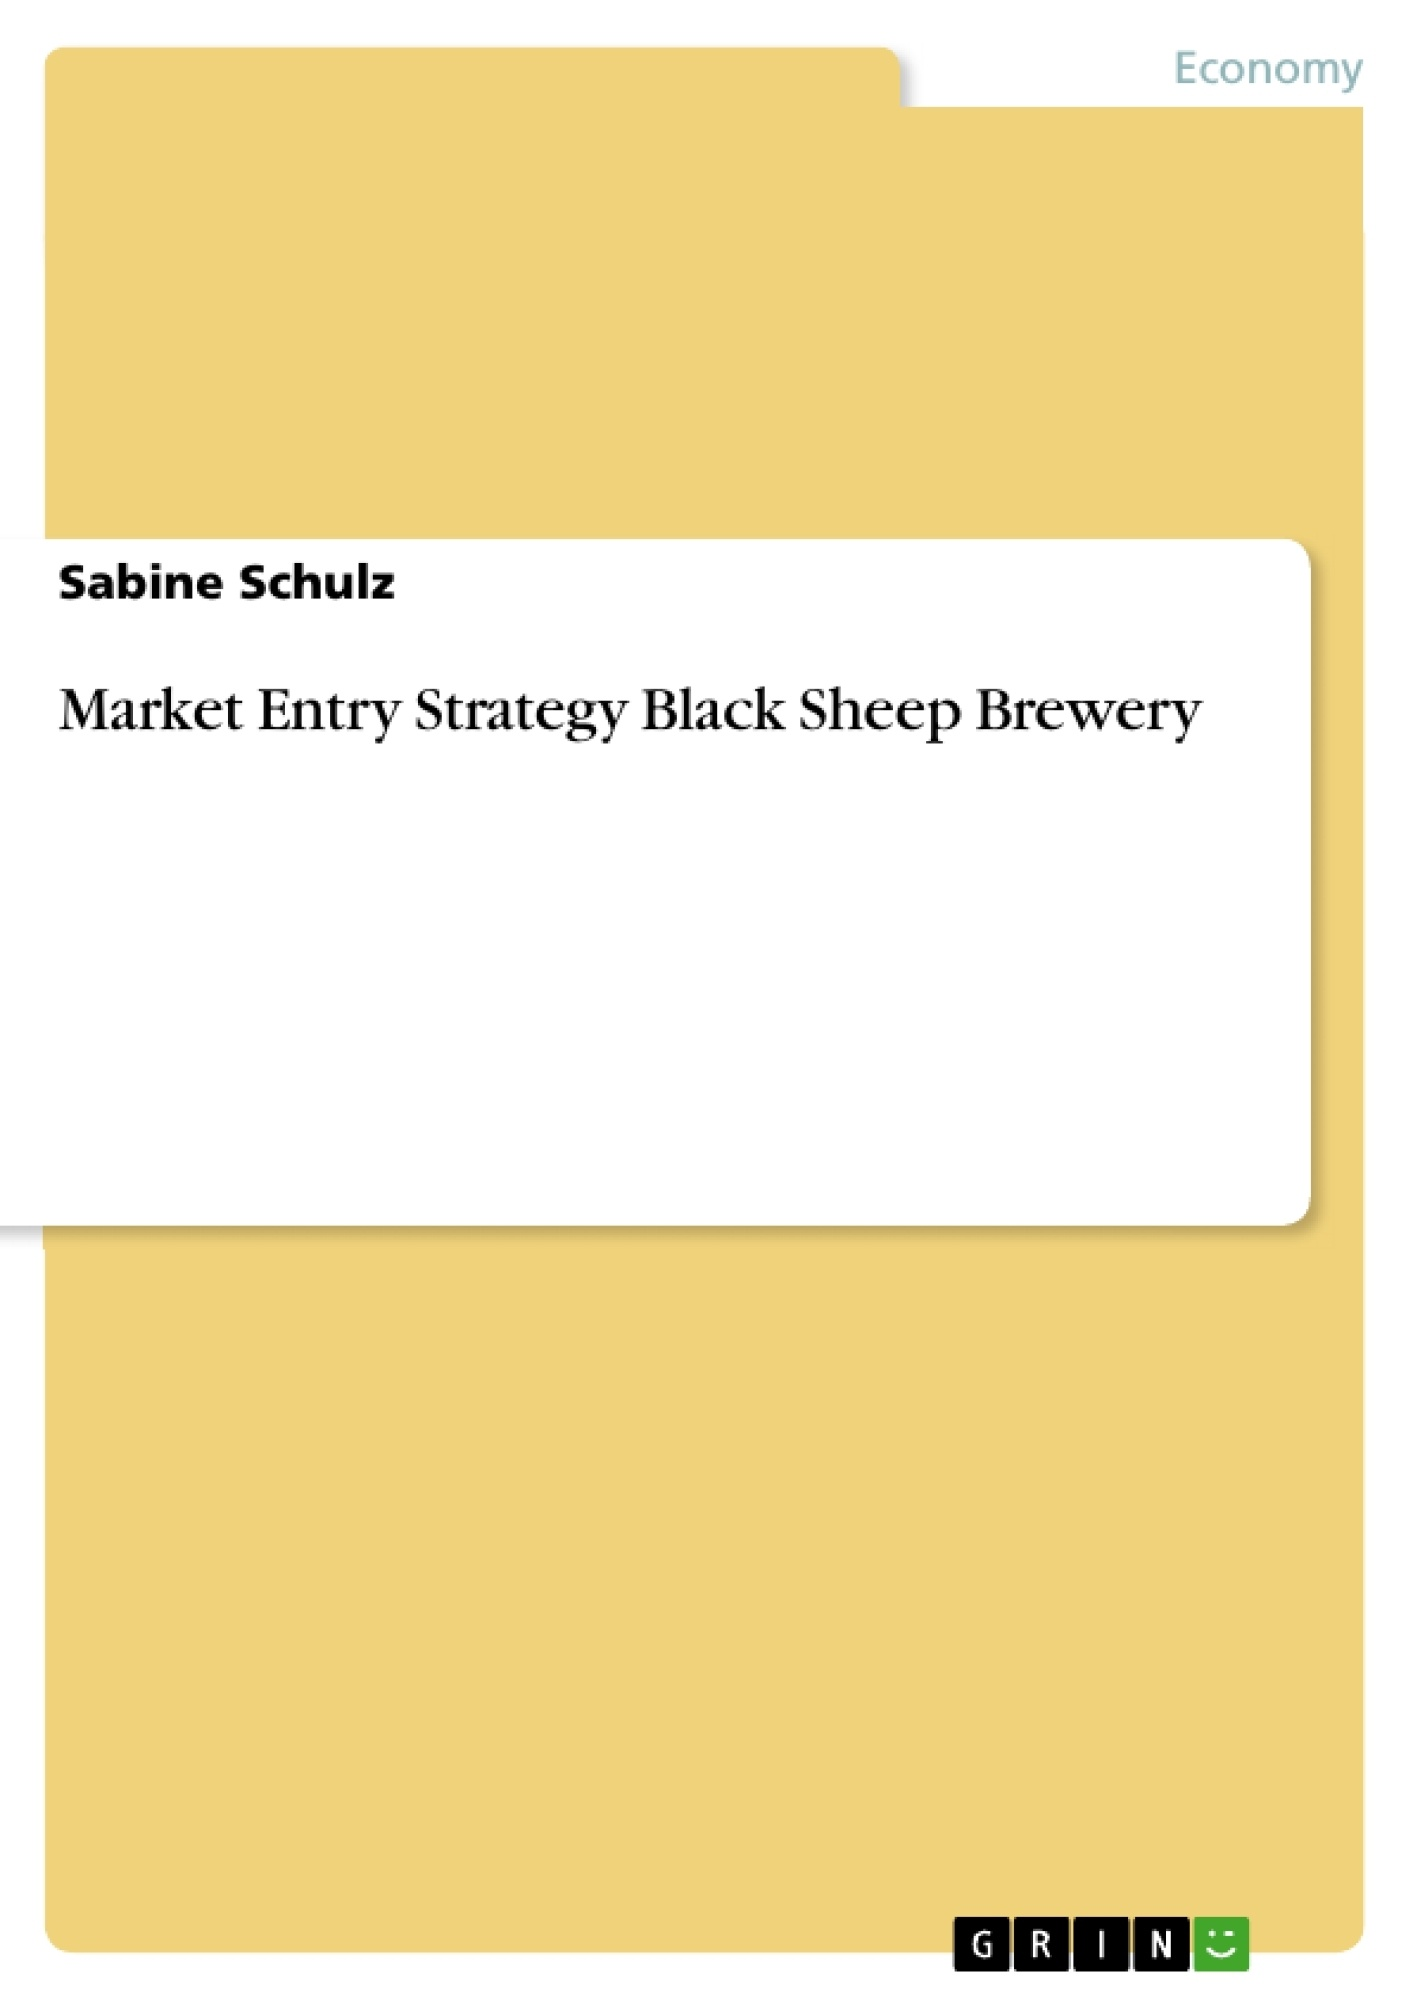 Title: Market Entry Strategy Black Sheep Brewery